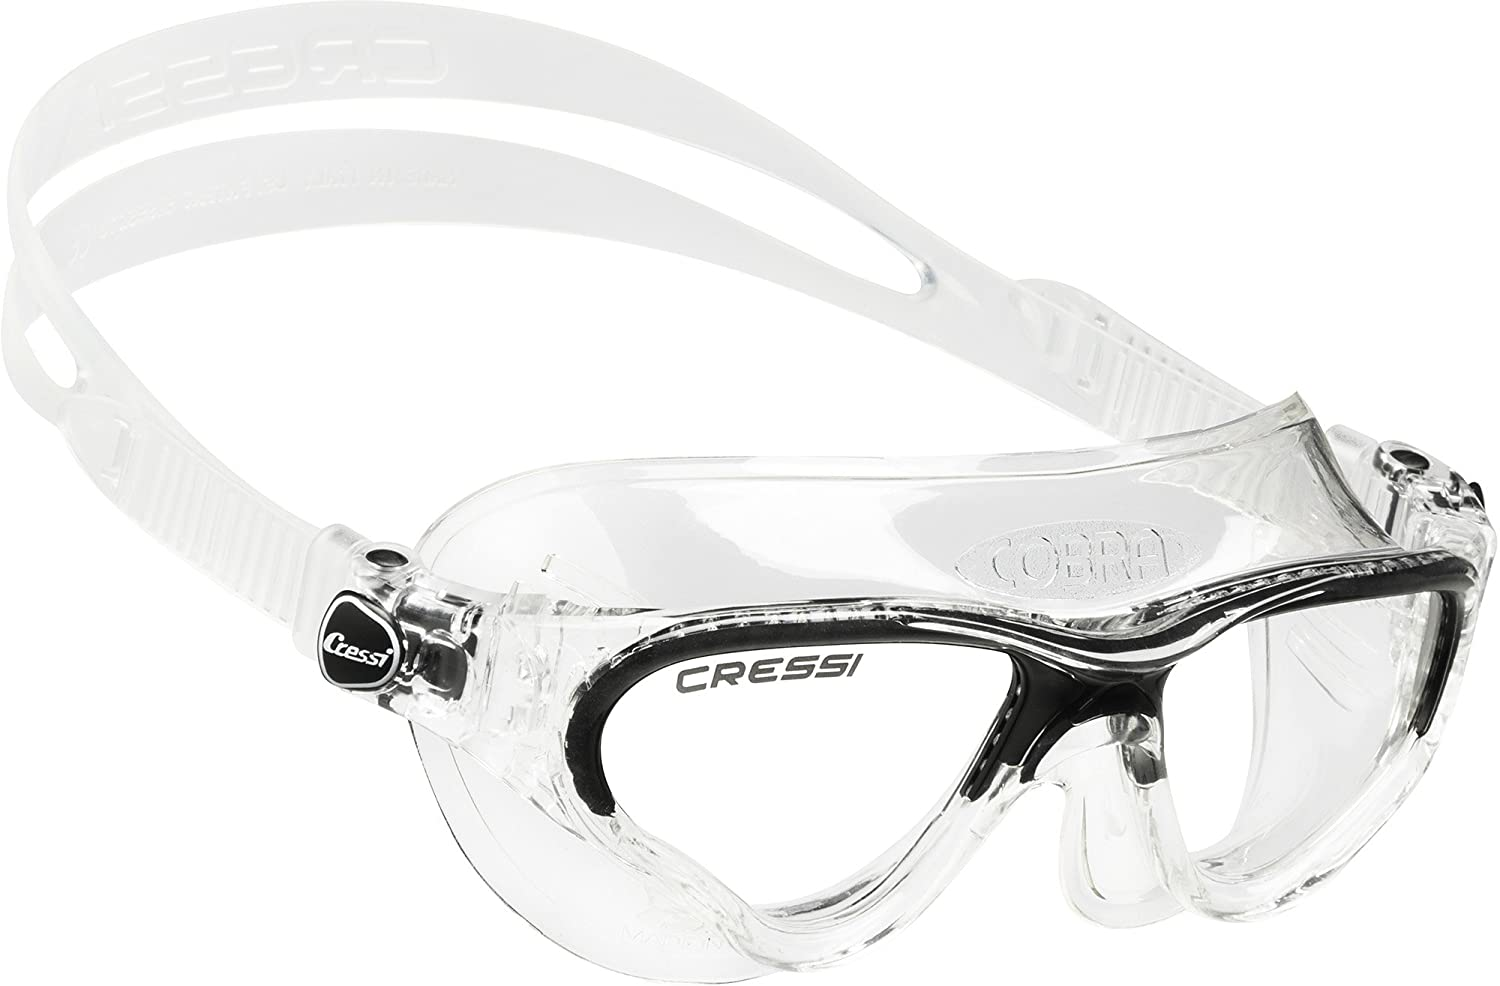 340f425ab29e Cressi Swim Cobra Swimming Goggles - Clear   Dark  Sports   Amazon.co.uk   Sports   Outdoors